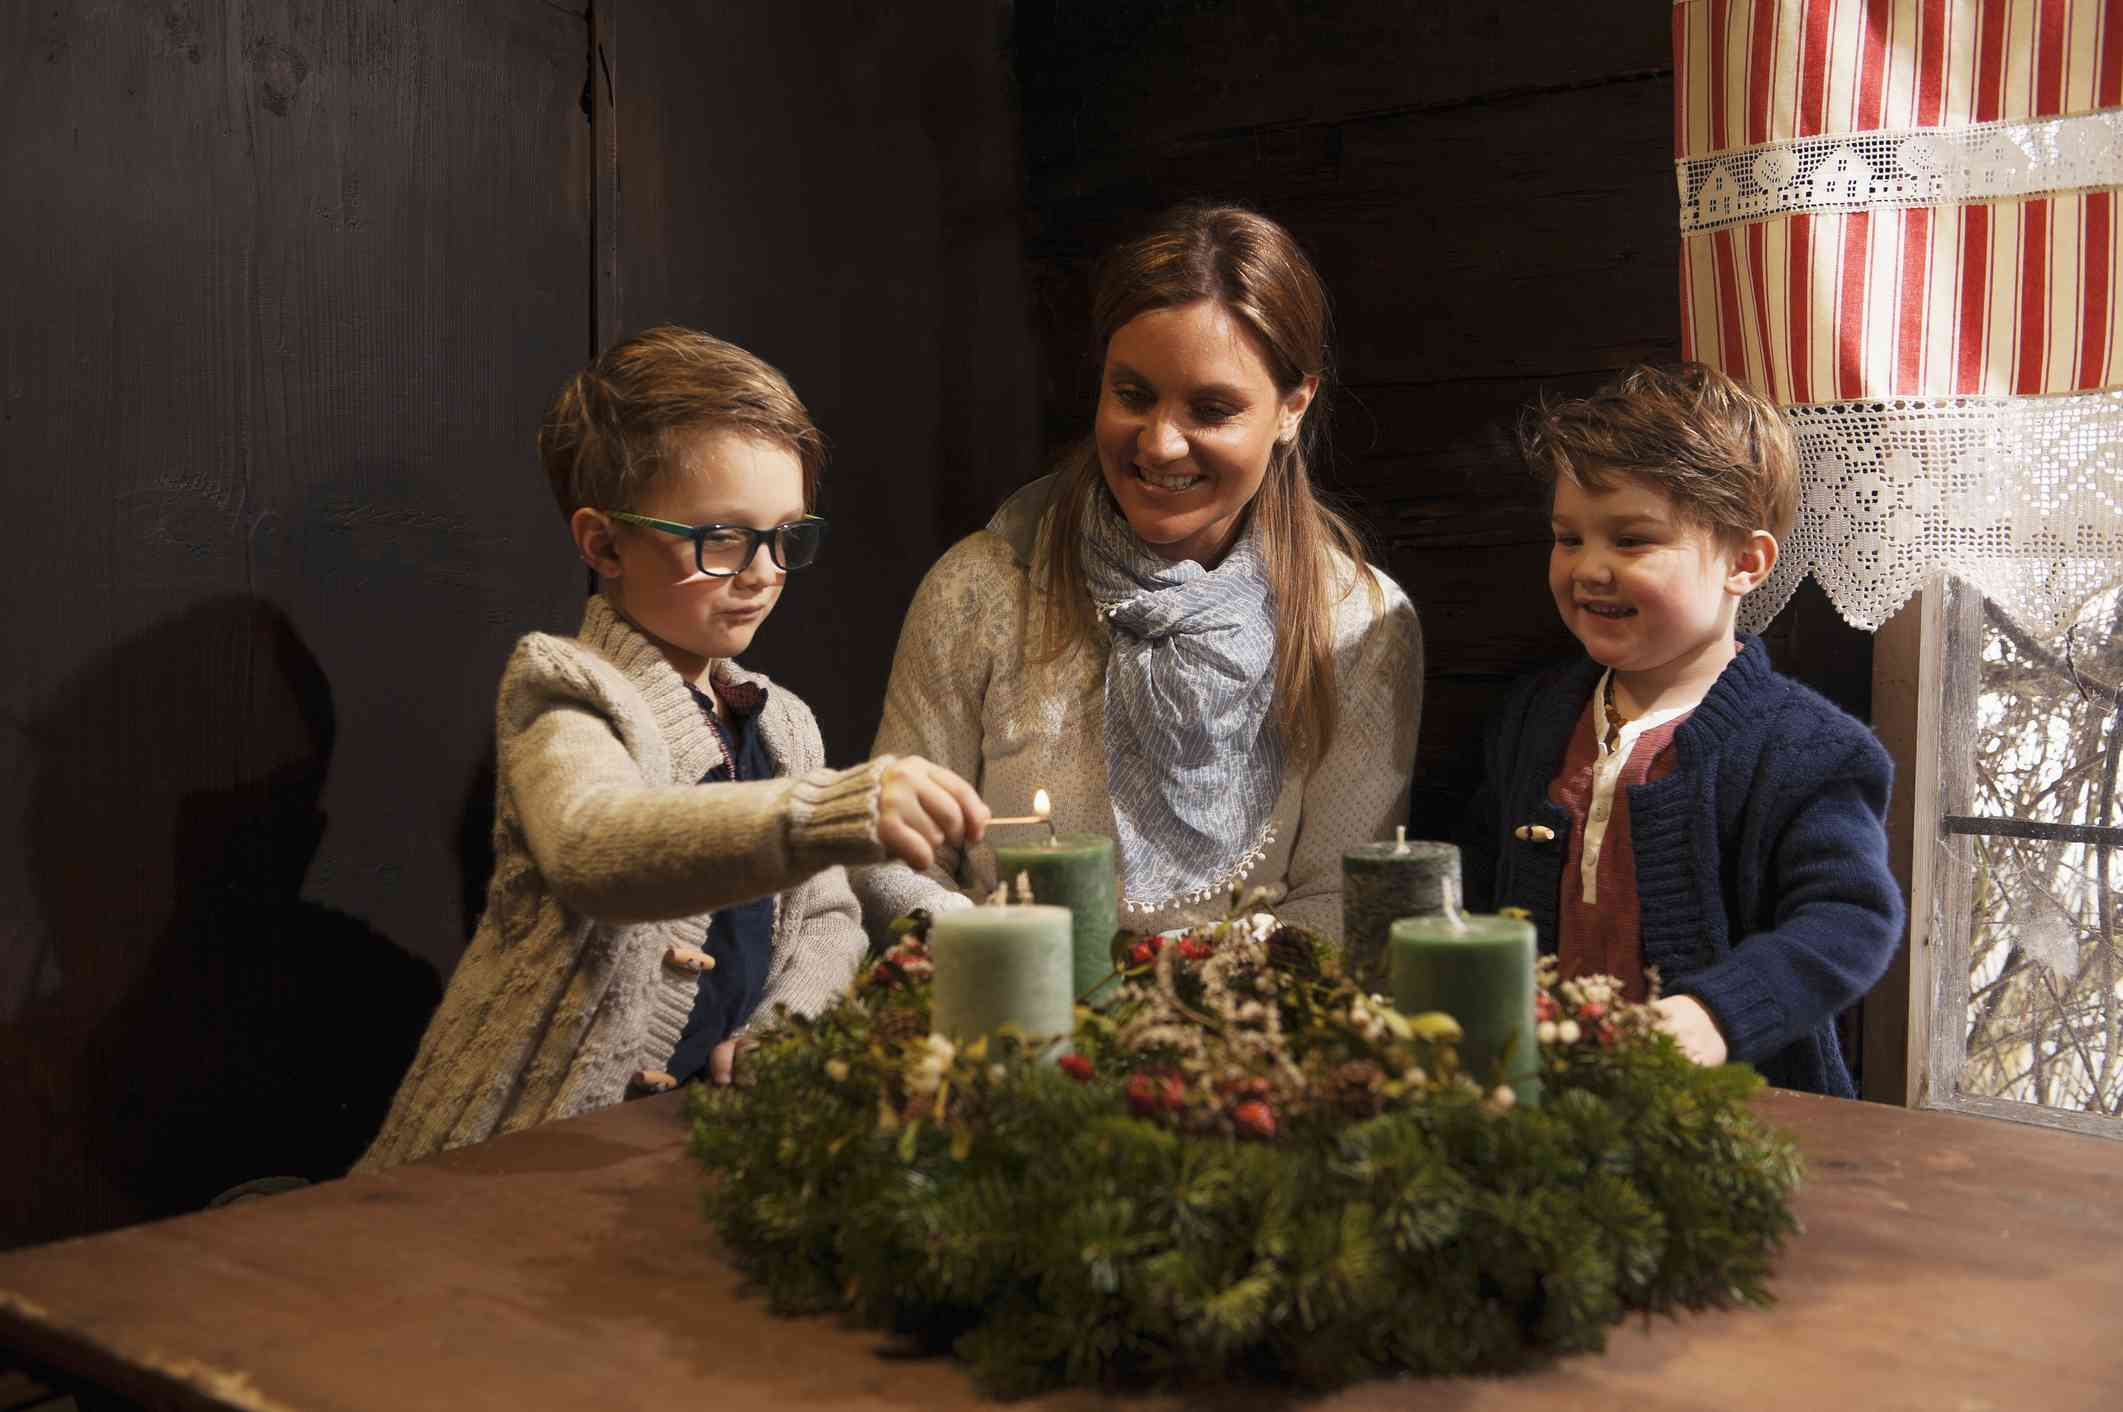 Woman and her sons lighting advent candles.